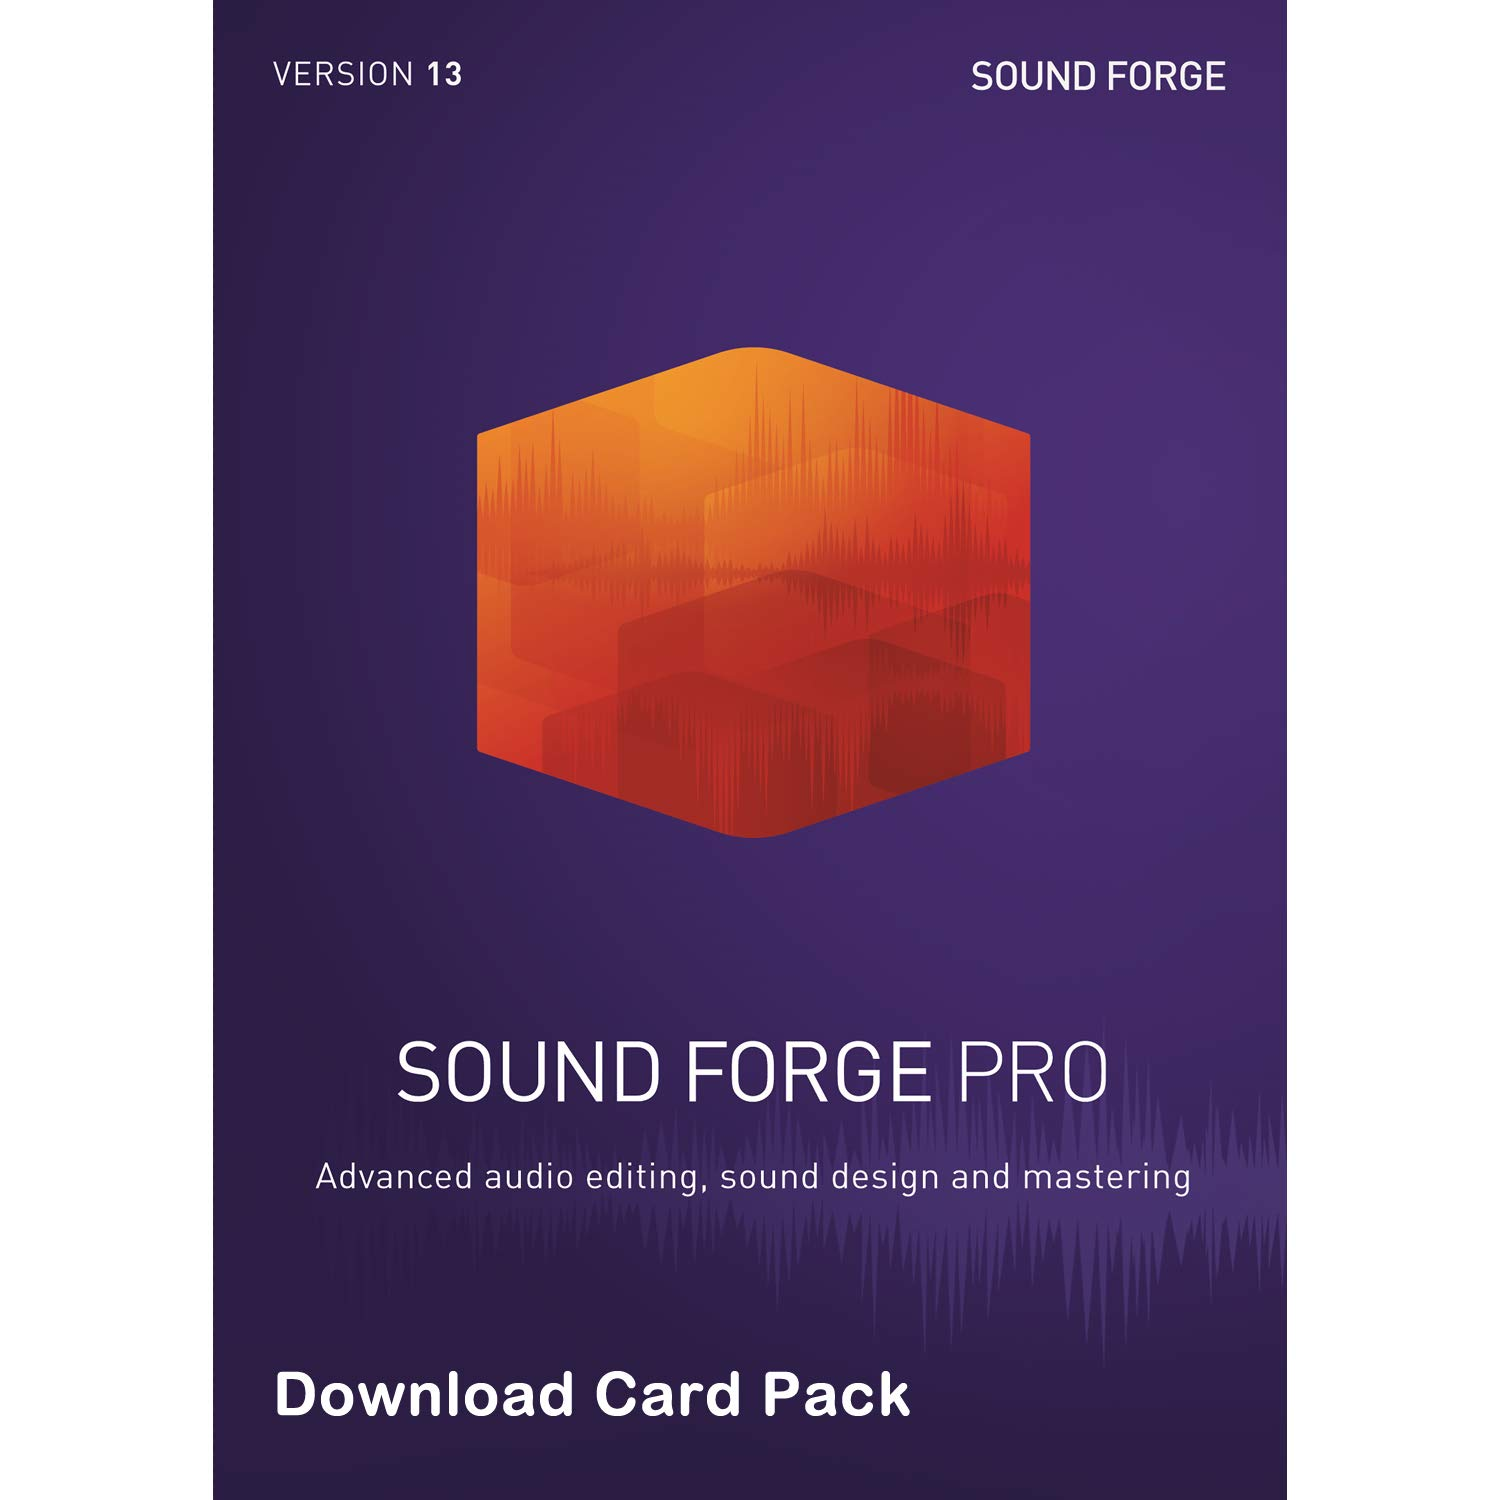 MAGIX Sound Forge Pro 13 [Download Card] - Audio Editing, Recording, Restoration and Mastering by Magix-Genesis